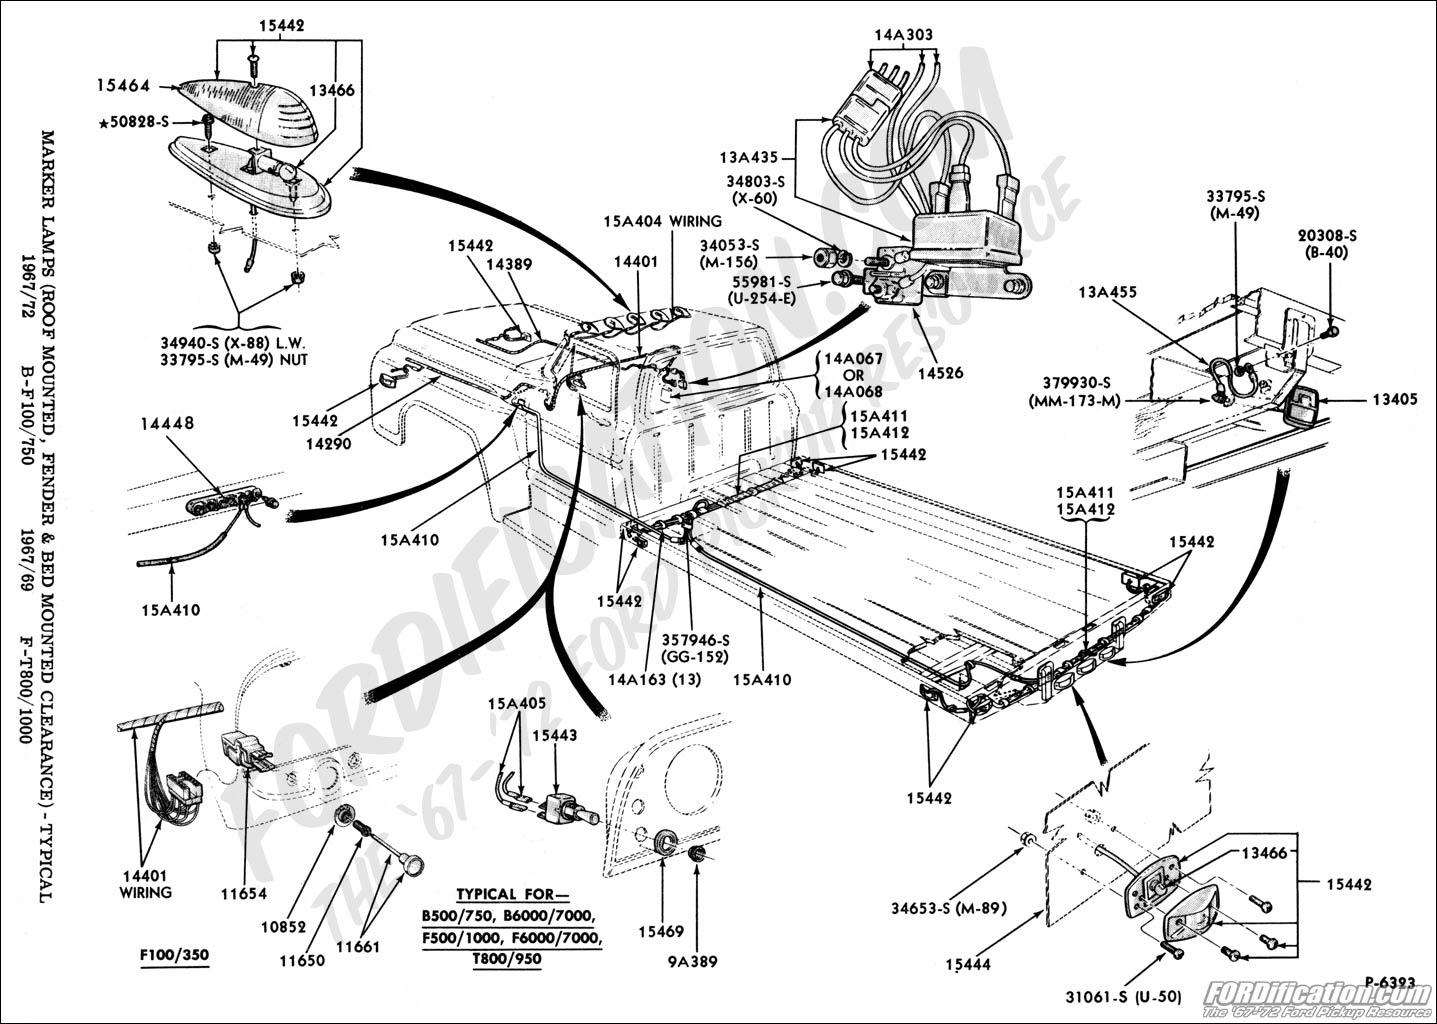 1968 F100 Wiring Diagram Simple Guide About Turn Signal Ford Truck Technical Drawings And Schematics Section I